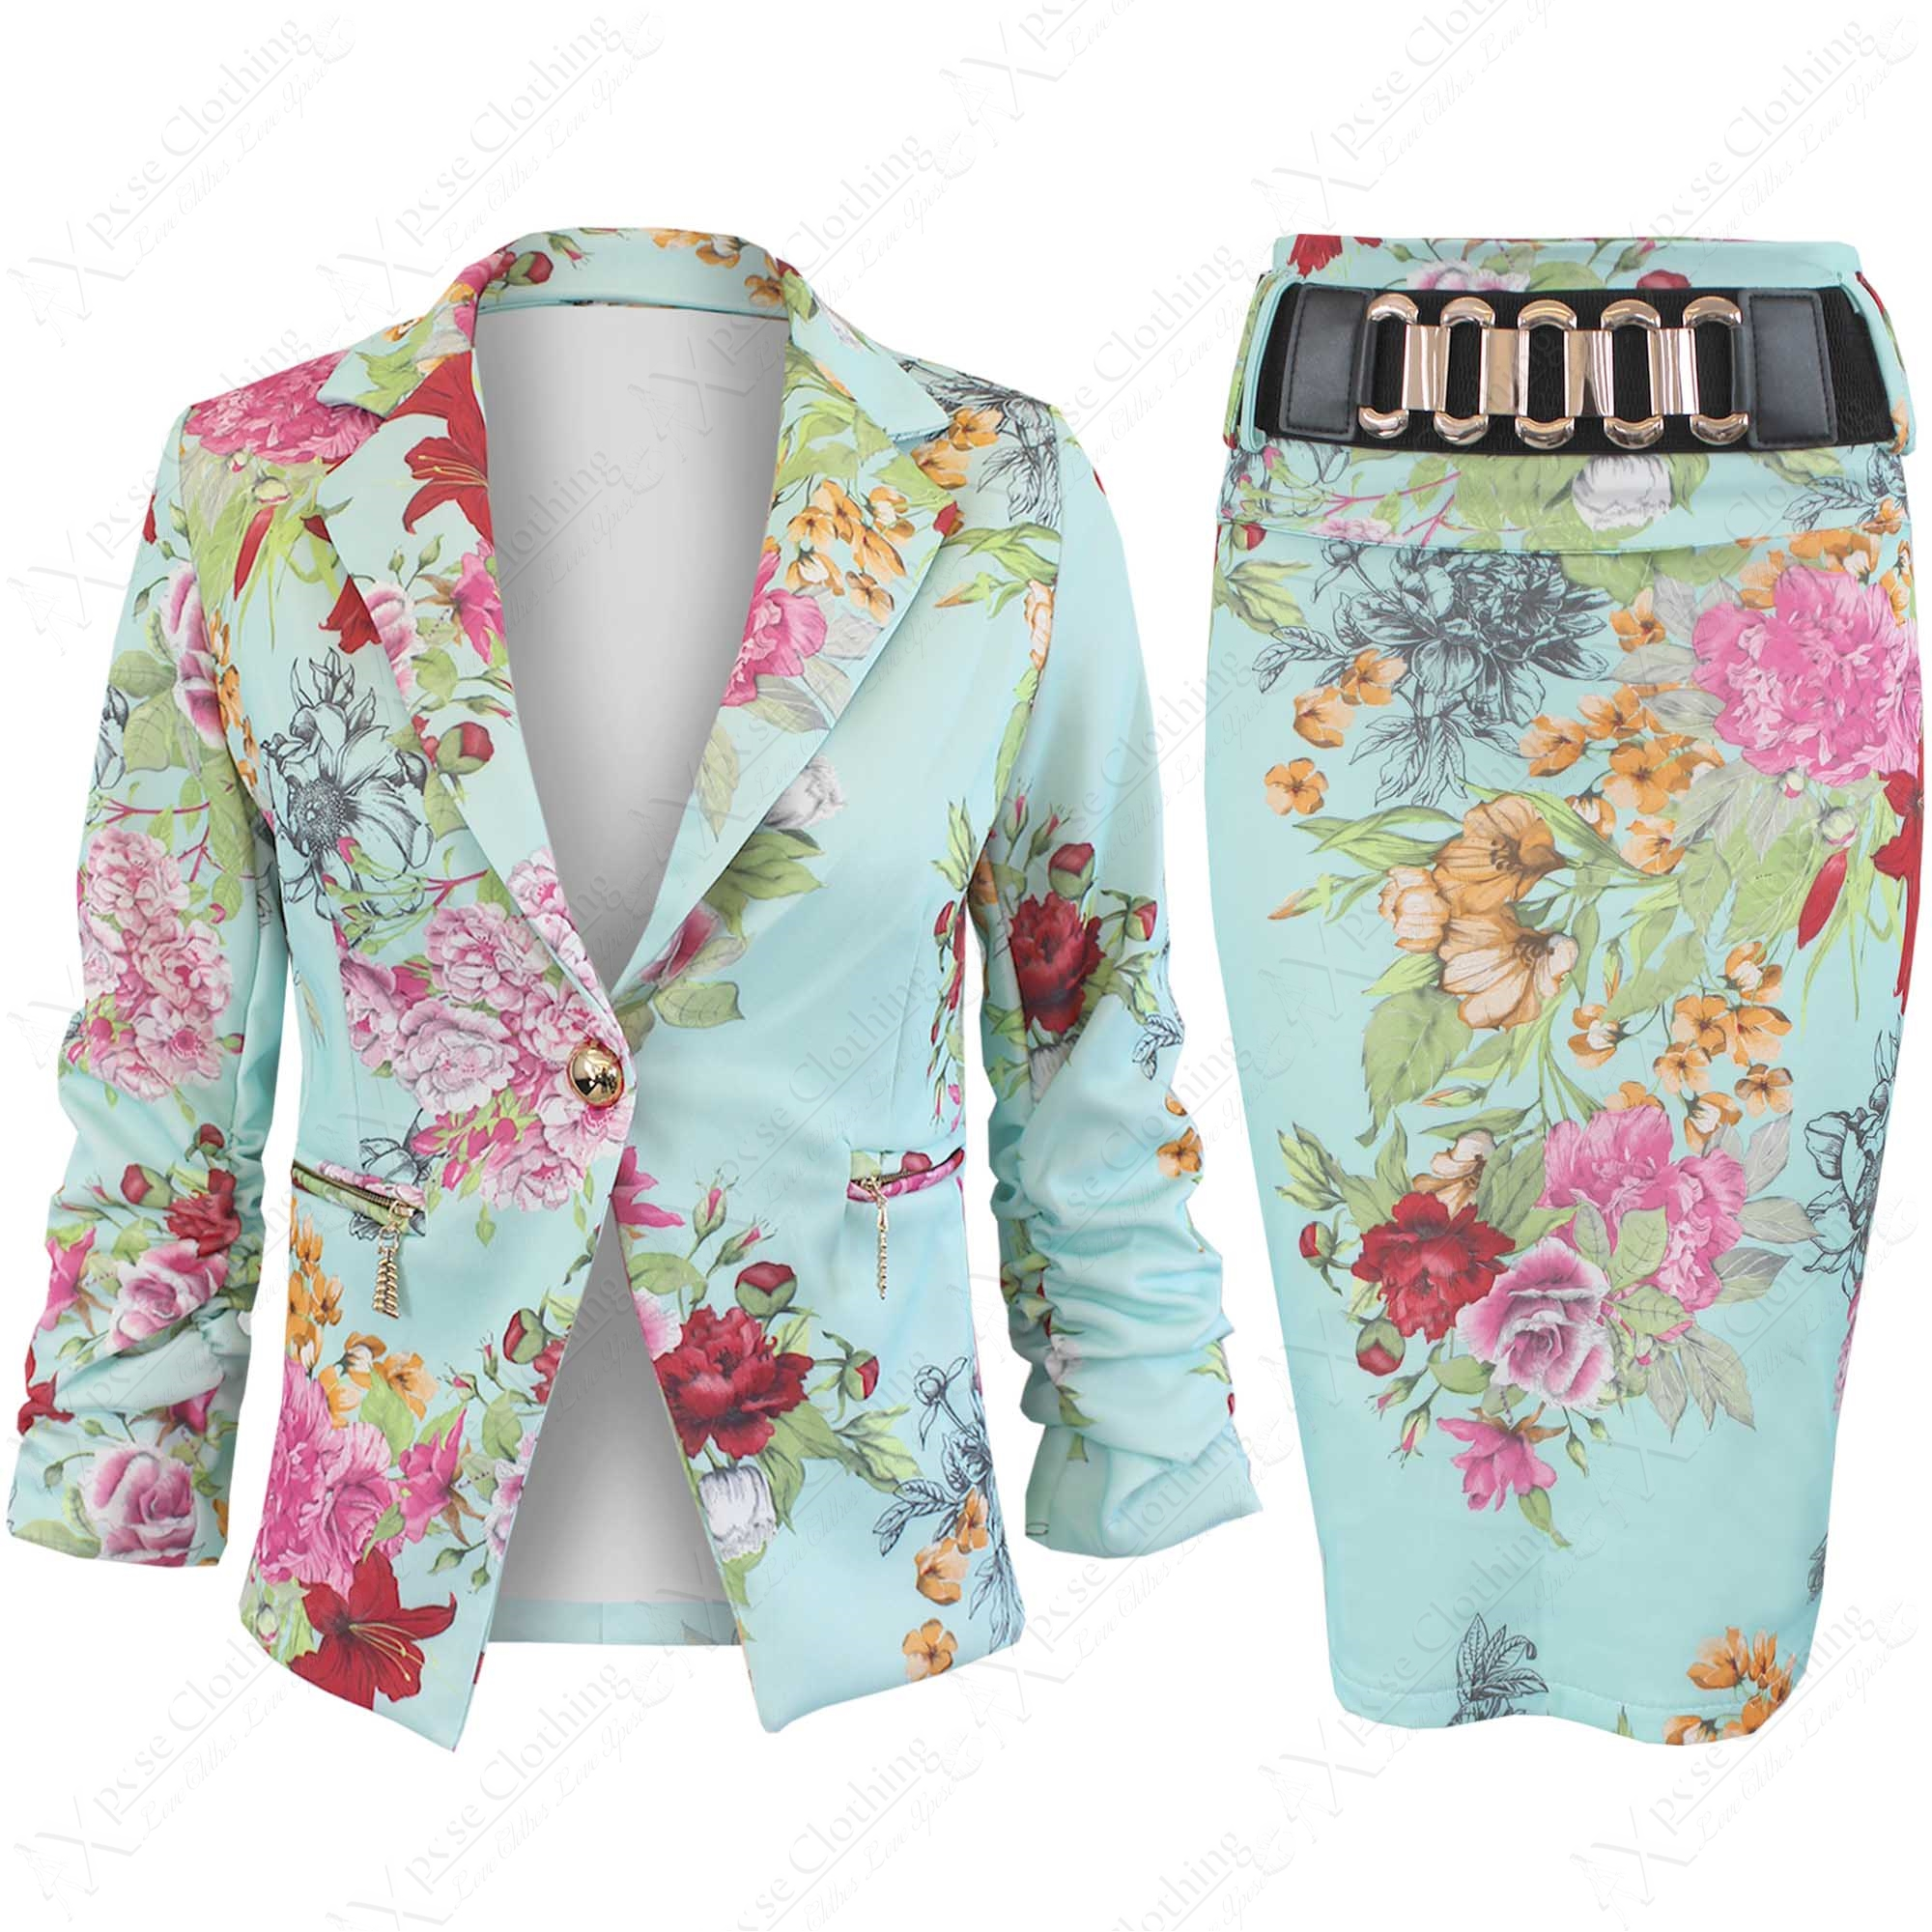 NEW LADIES FLORAL PRINT BLAZER PENCIL LOOK SKIRT WOMENS JACKET TOP ...